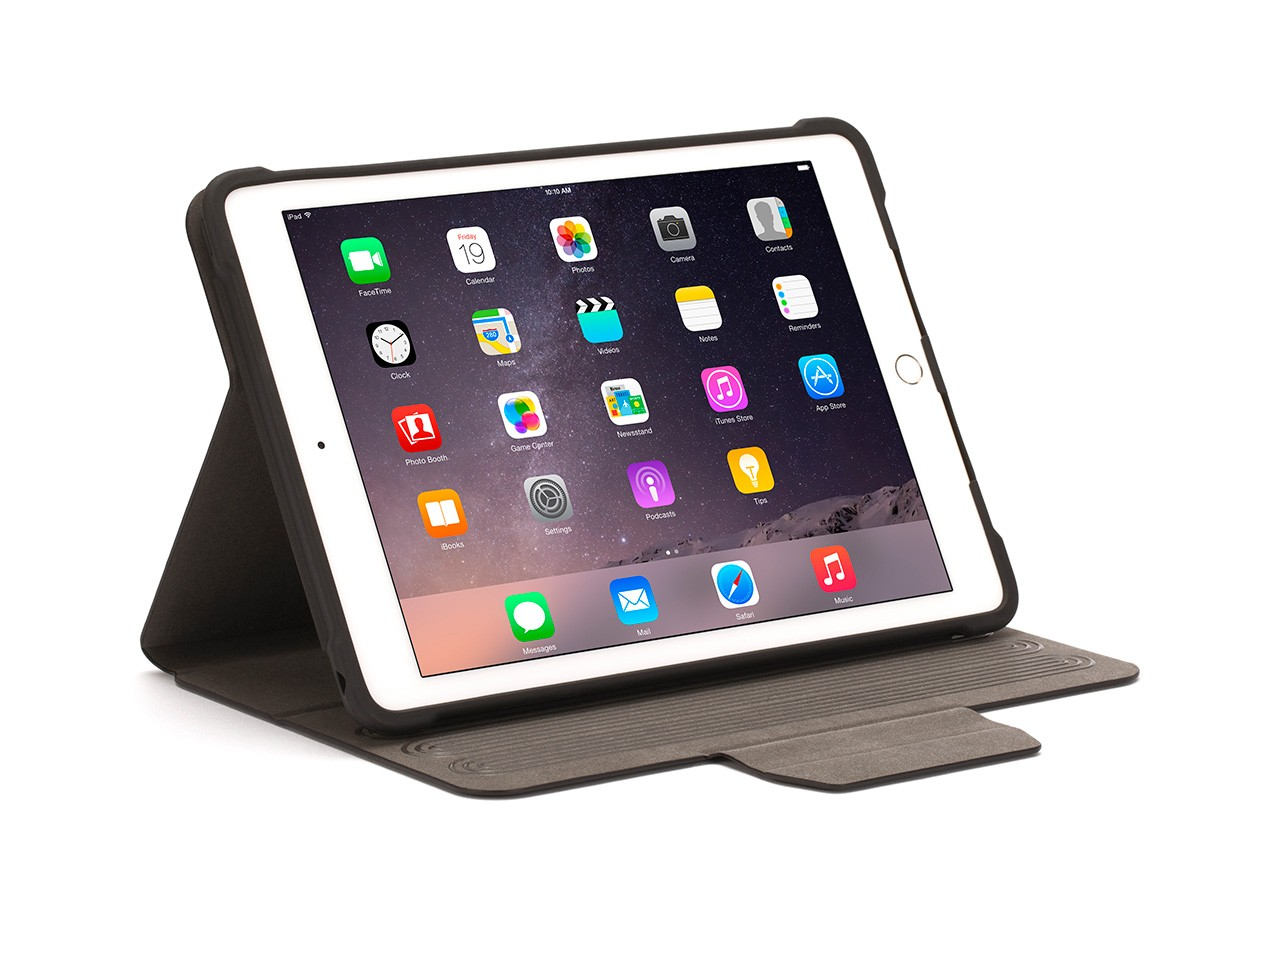 This folio cover opens like a book and closes to protect, even if you drop it from 6 feet. Inside the cover, your iPad Air 2 is held in a protective frame that grips its edges, leaving the entire surface of your touchscreen accessible to your fingers.    The frame holding your iPad Air 2 is detachable for easy one-handed use. Inside the folio, it rotates a full 360 degrees, and clicks into landscape or portrait mode, then folds into a 4-position workstand. Magnetic closure allows for a stylus inside, next to your device.